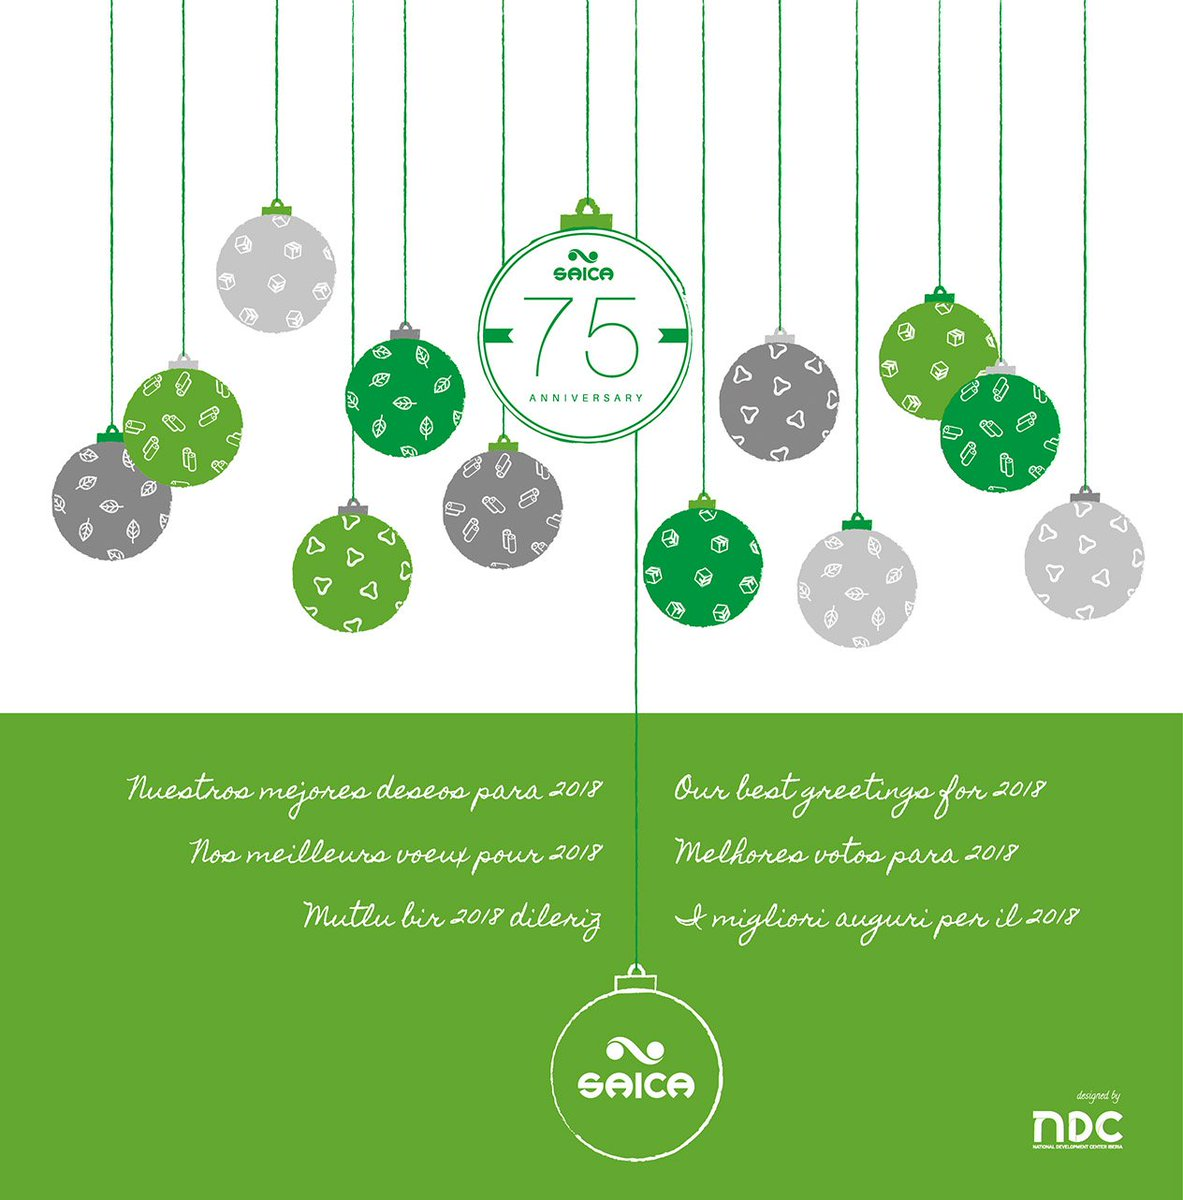 Wishing all our customers, suppliers, colleagues and friends a very happy Christmas and prosperous 2018. https://t.co/Kv2sLxOwBO